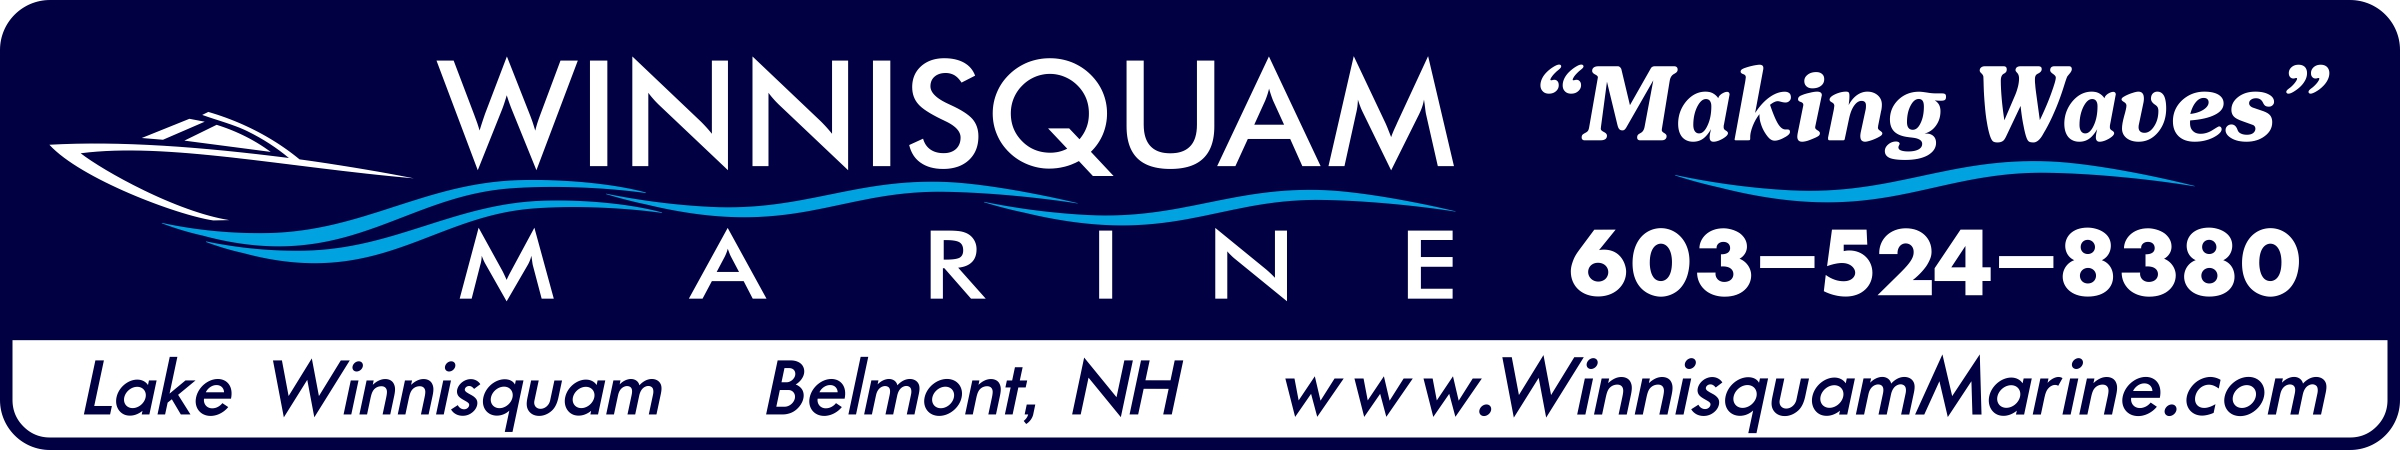 Winnisquam Marine, Inc.